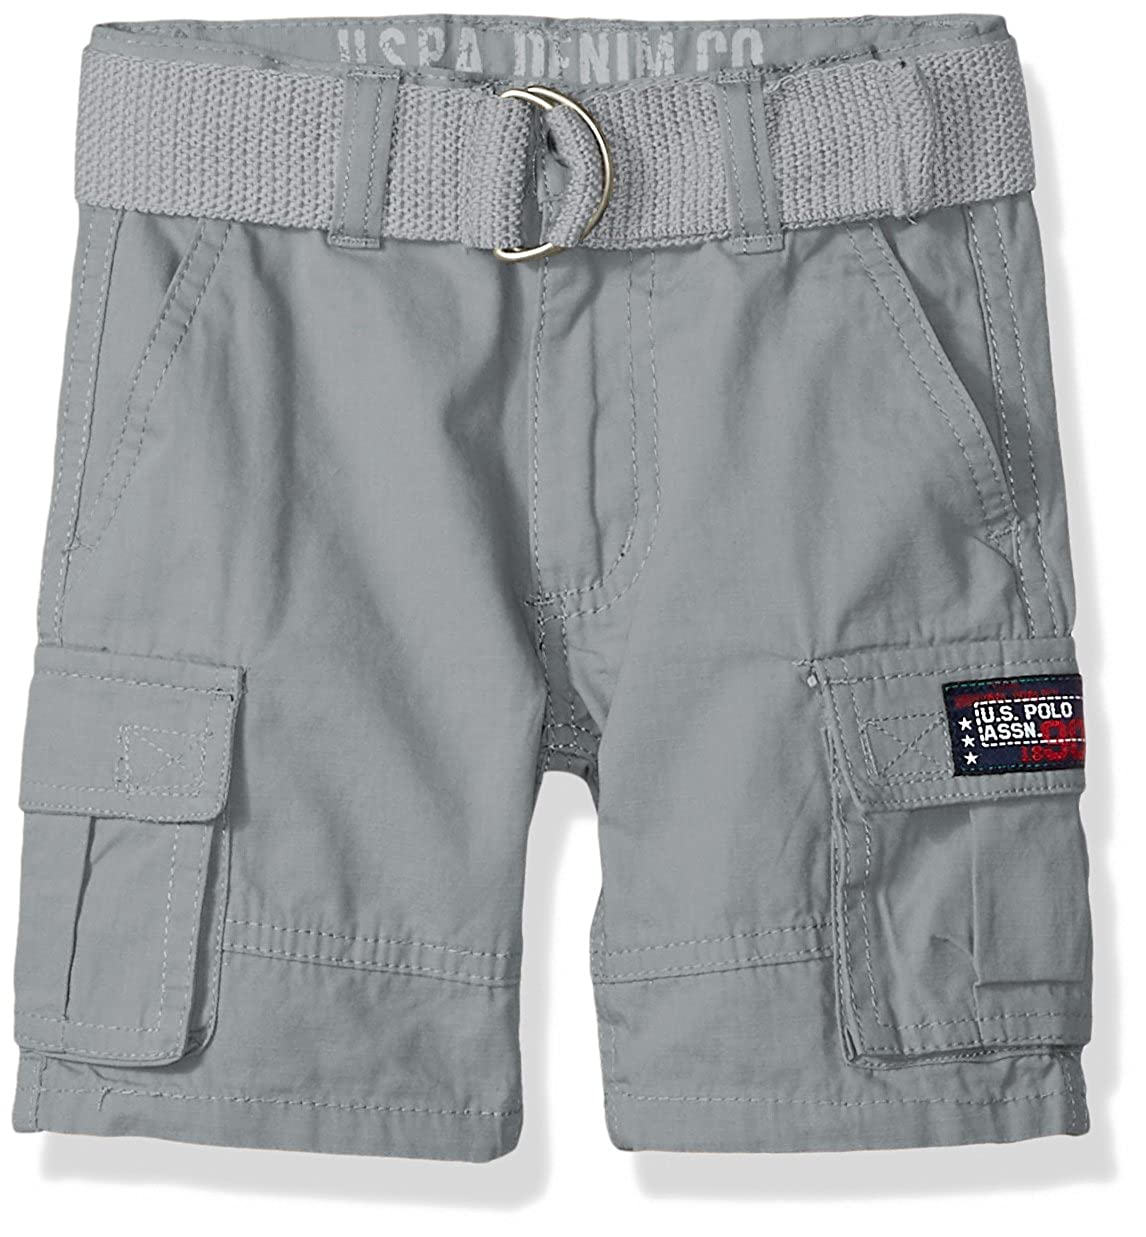 U.S. Polo Assn. Boys' Short HC42